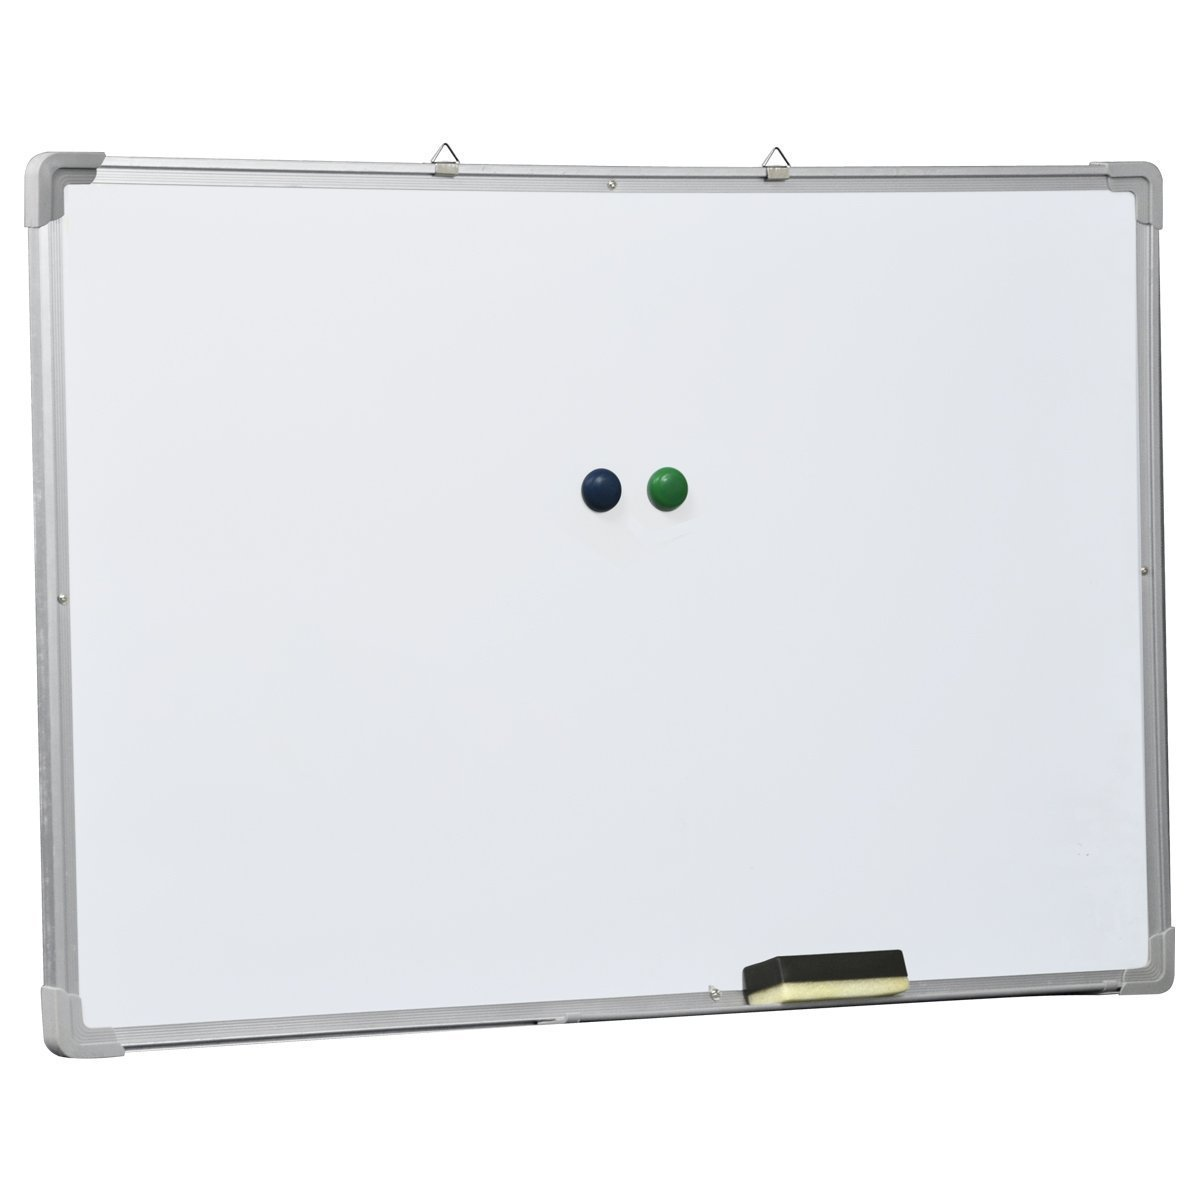 Viz Pro Magnetic Dry Erase Monthly Planner 36 X 24 Inches